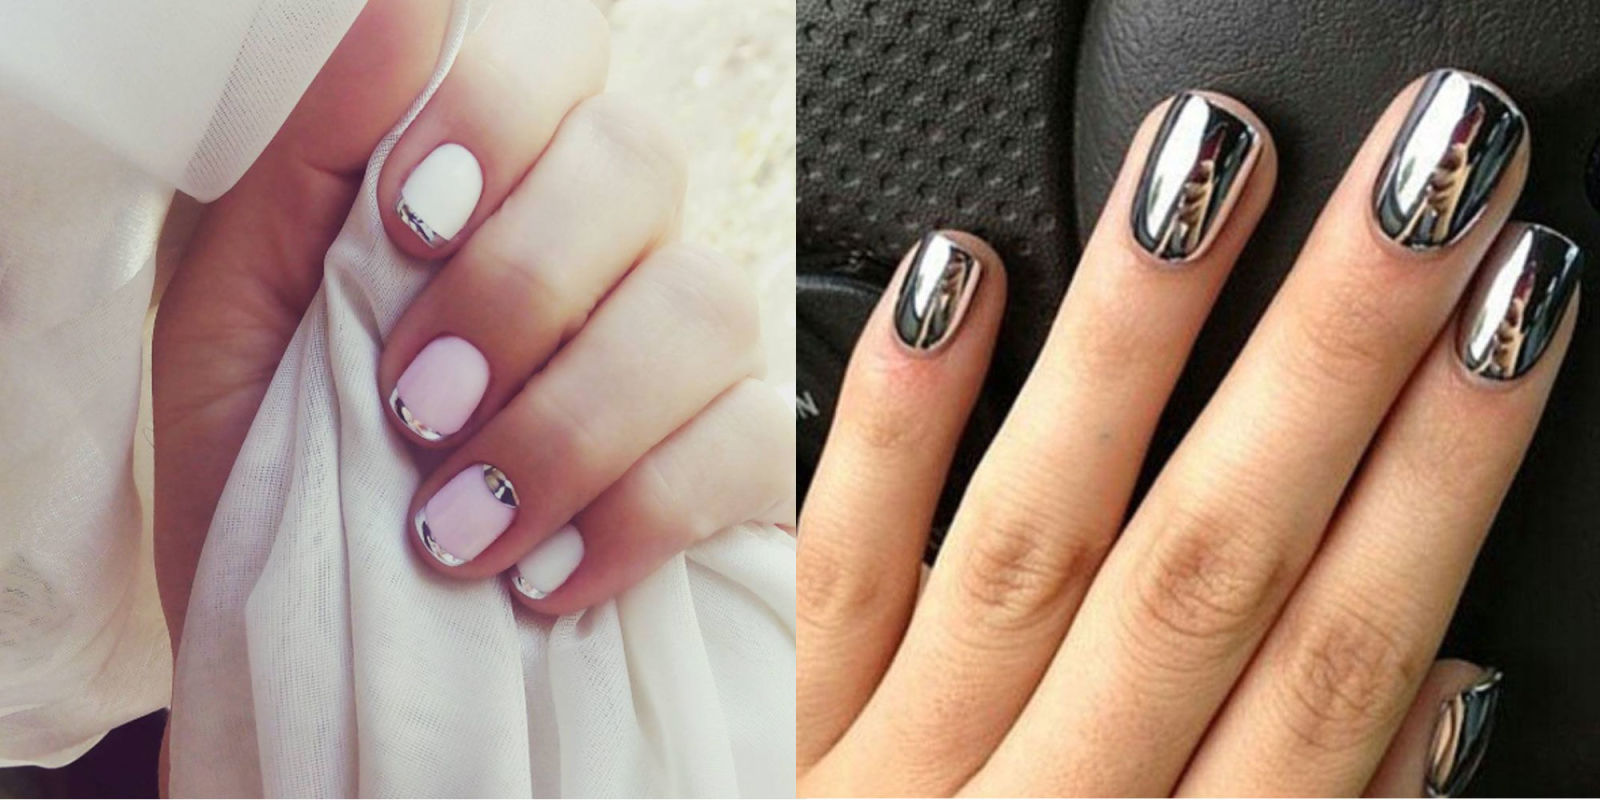 The new trend in manicure - Mirror nails